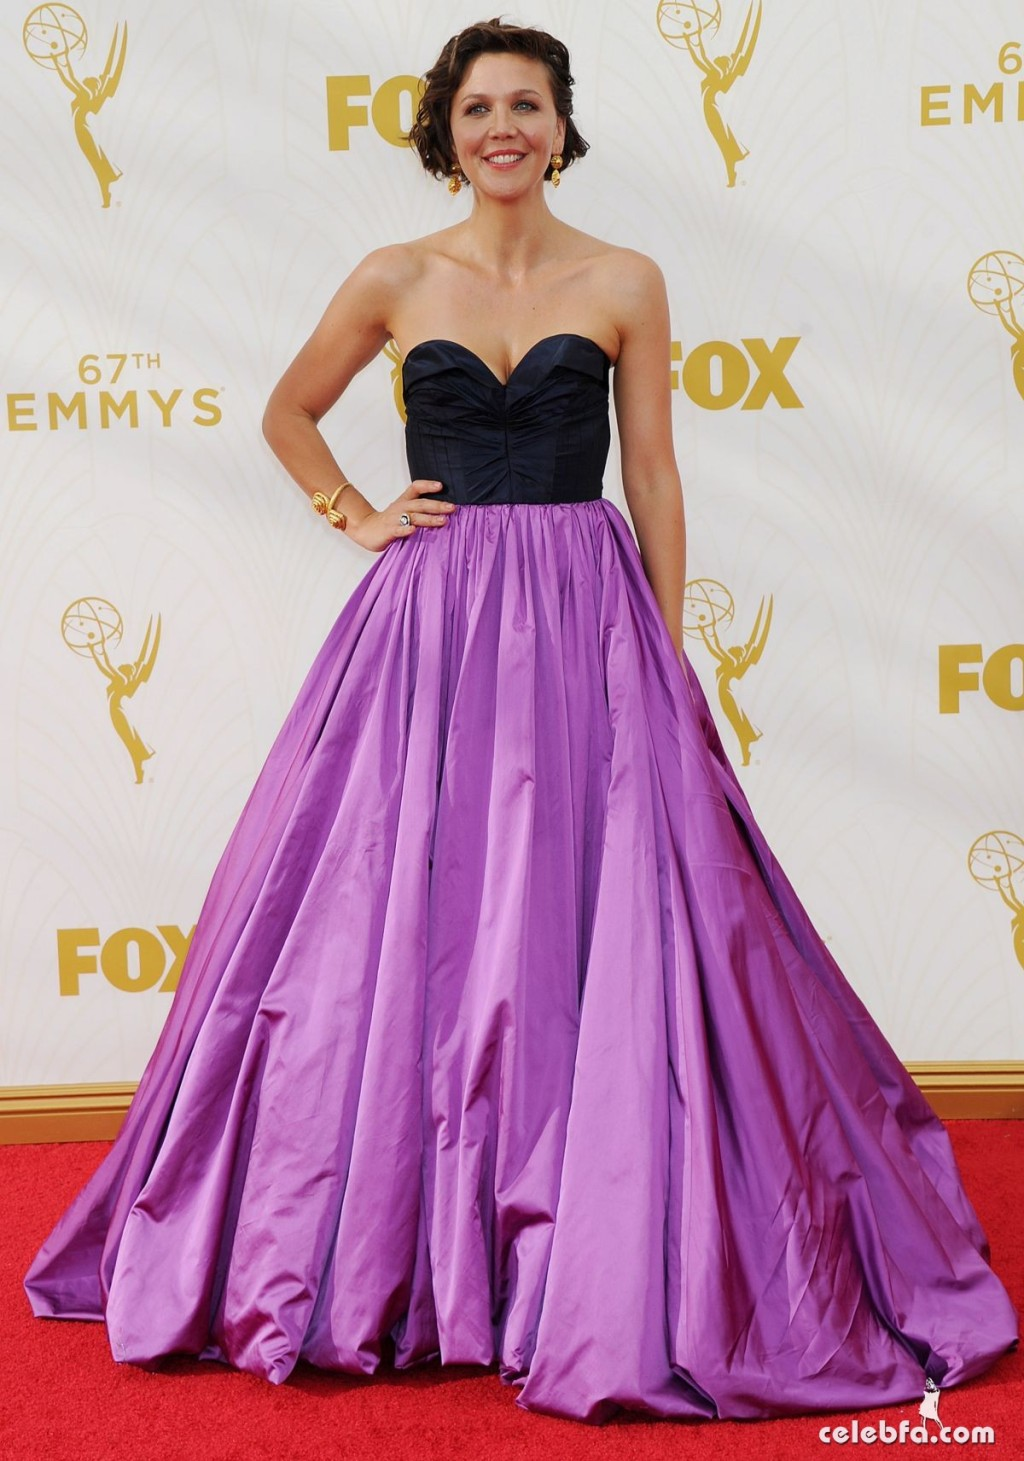 maggie-gyllenhaal-at-2015-emmy-awards (3)